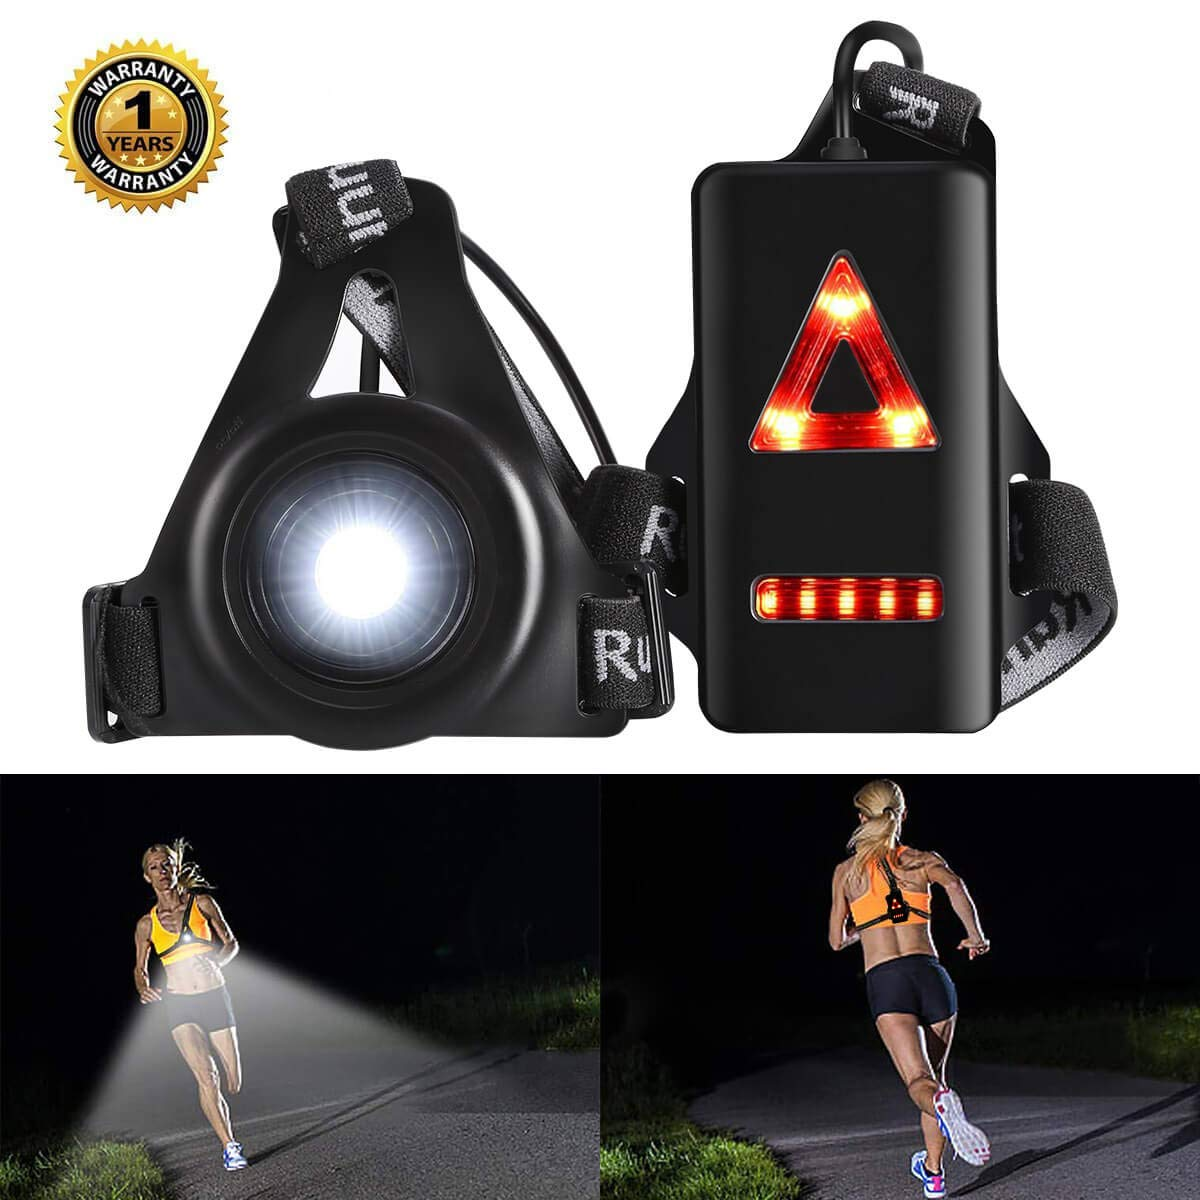 ALOVECO Outdoor Night Running Lights LED Chest Light Back Warning Light with Rechargeable Battery for Camping, Hiking, Running, Jogging, Outdoor Adventure by ALOVECO